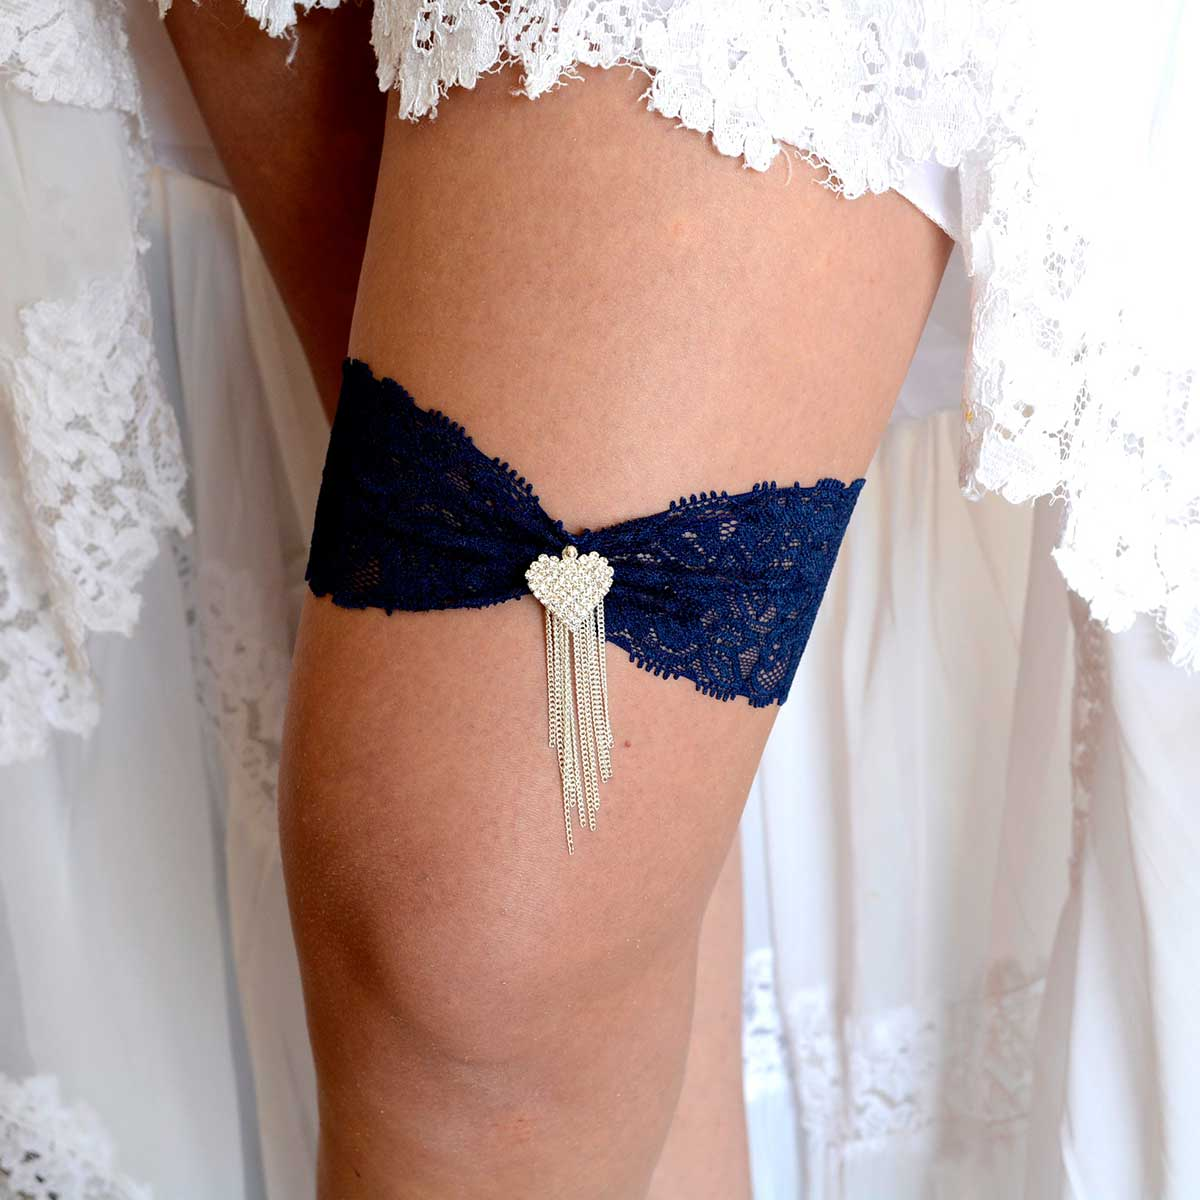 Dark Blue Elastic Bridal Garter Set With Clear Heart Rhinestone - Wedding Garter - SuzannaM Designs